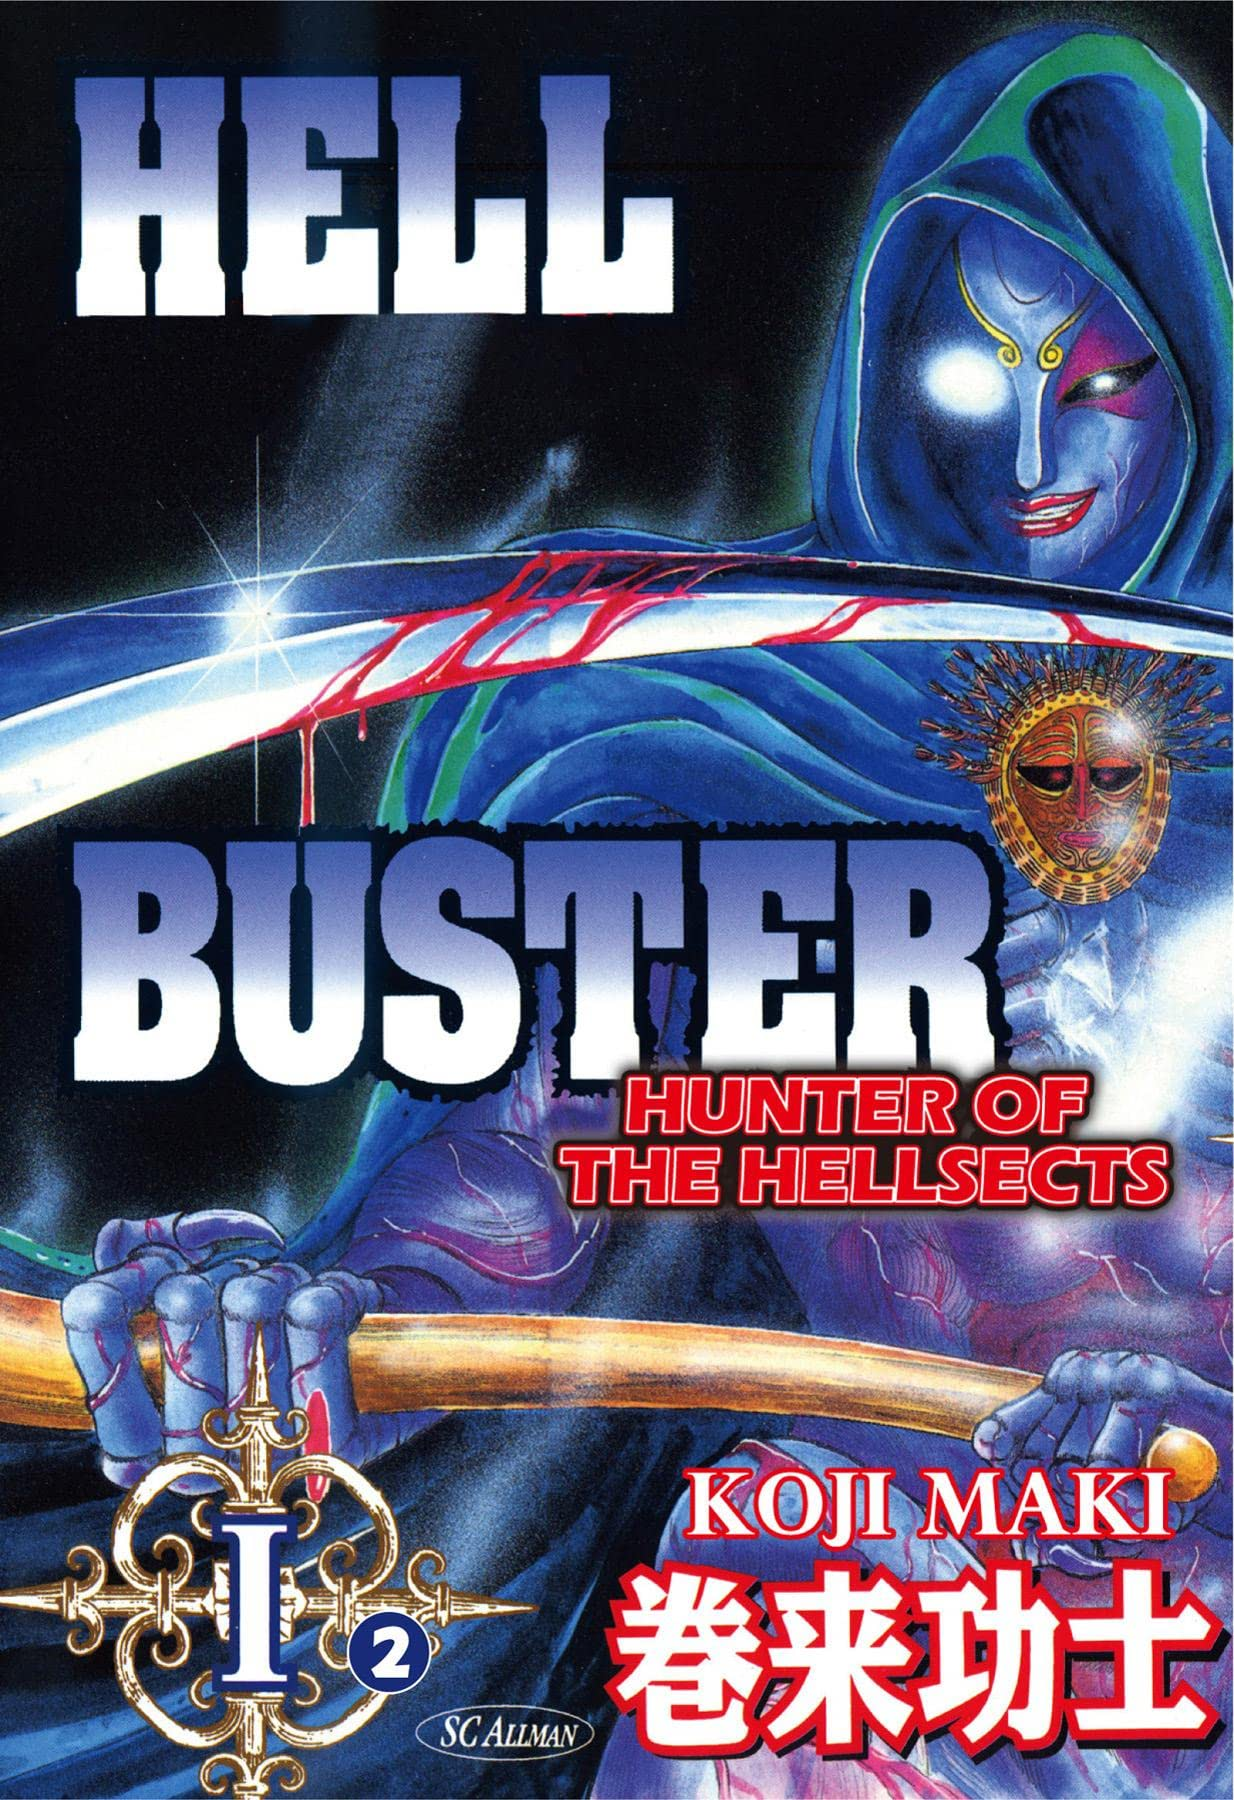 HELL BUSTER HUNTER OF THE HELLSECTS #2